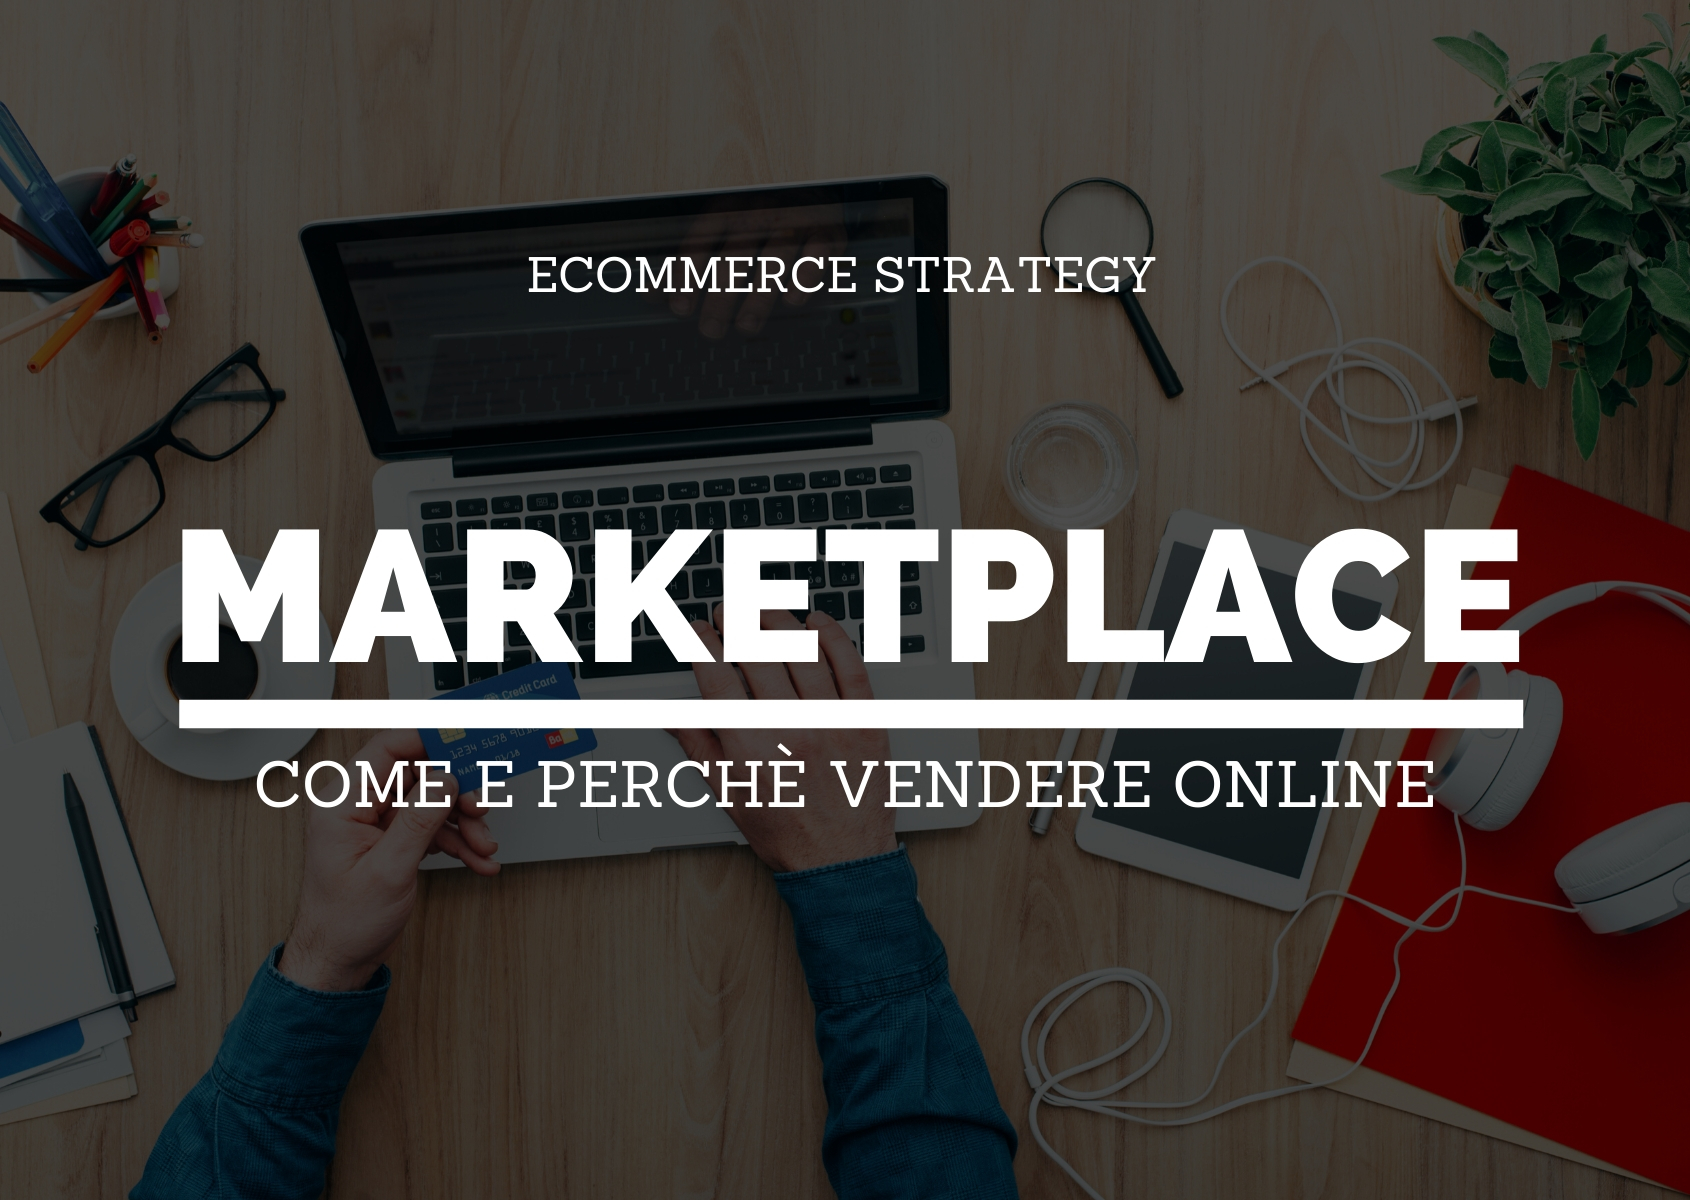 Marketplace-strategy-header